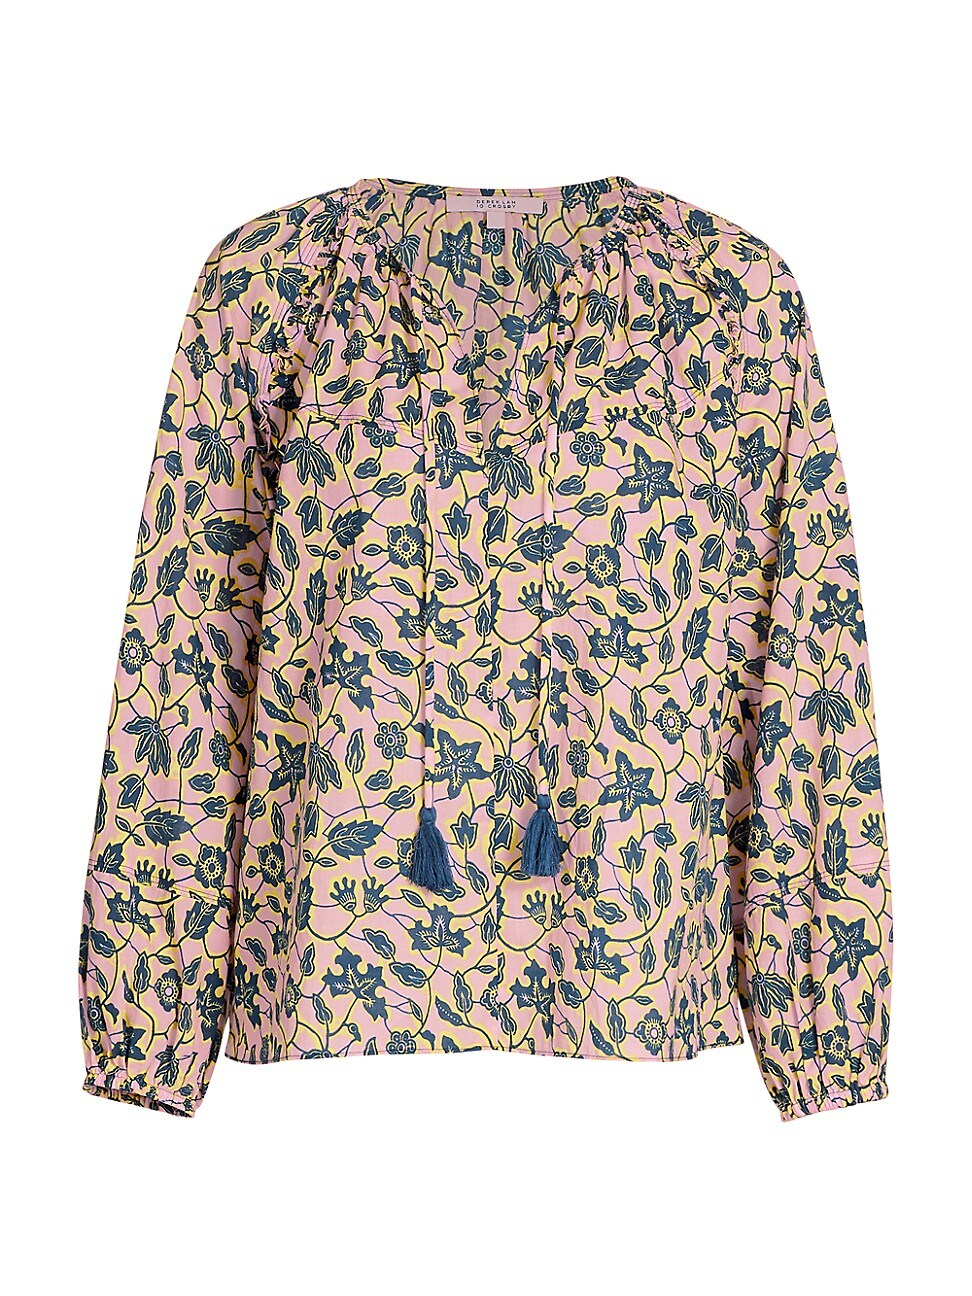 Derek Lam 10 Crosby WOMEN'S DEVON FLORAL LONG-SLEEVE BLOUSE